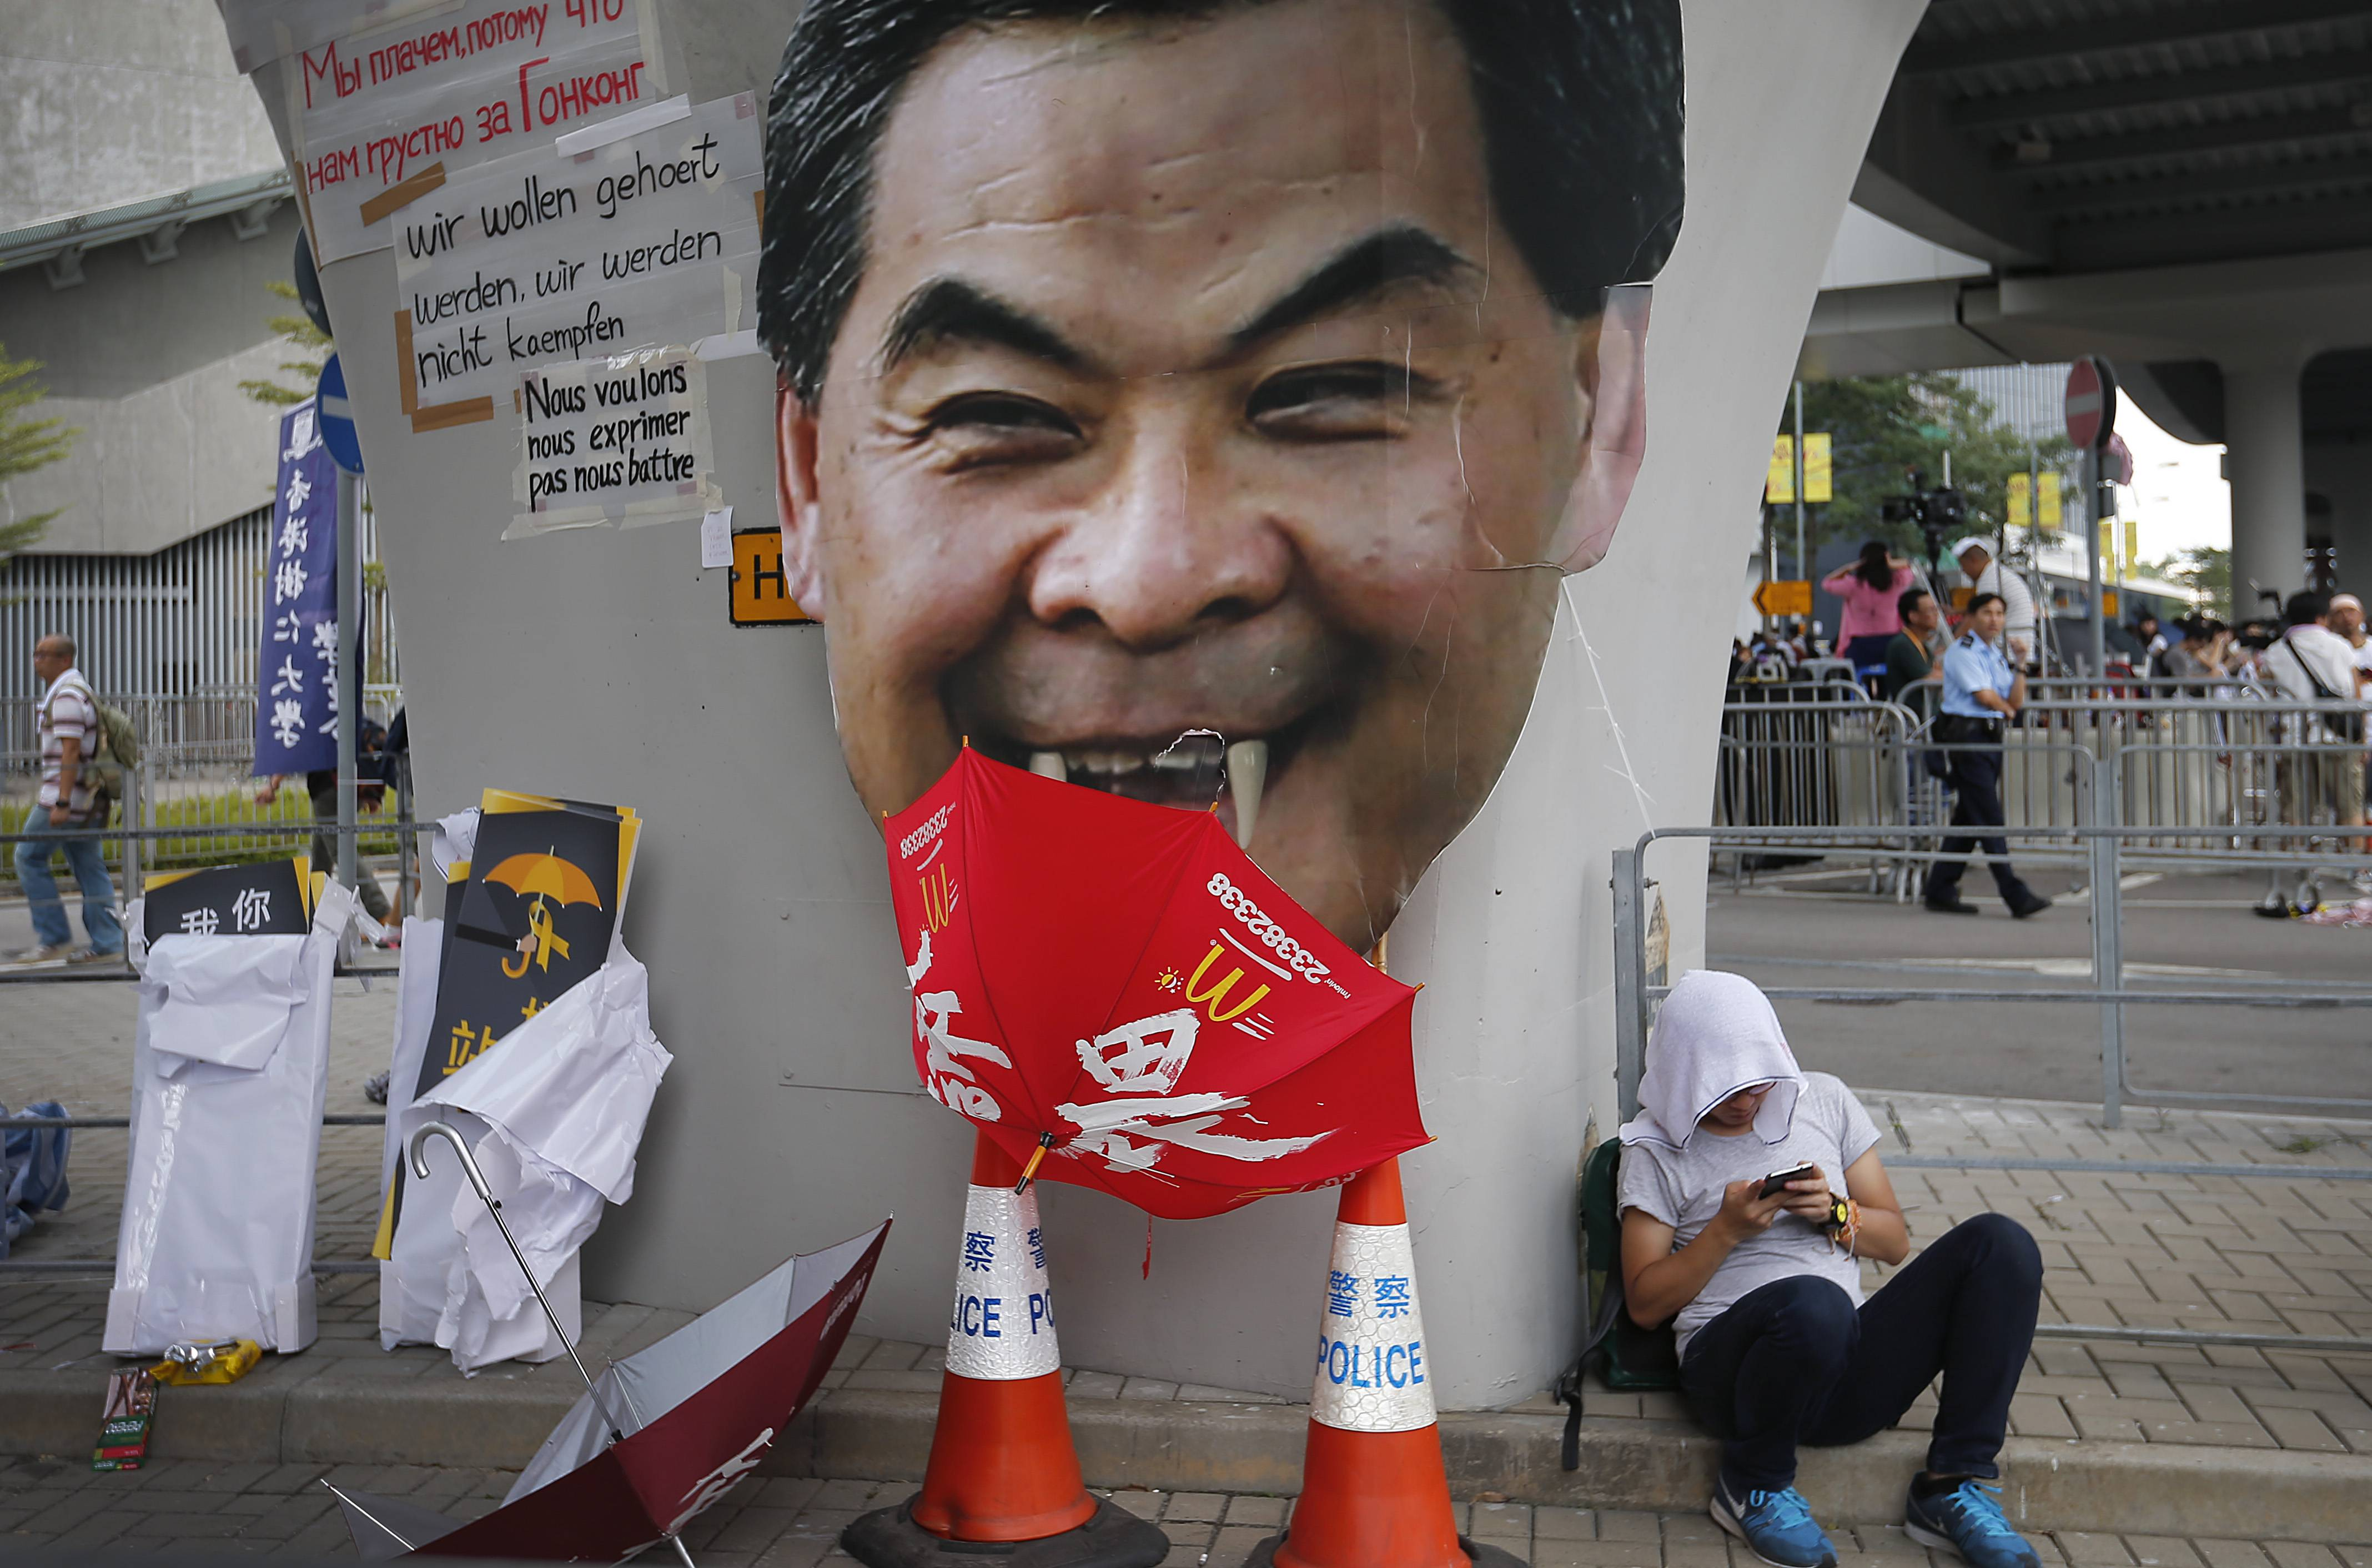 A student protester rests next to a defaced cutout of Hong Kong's Chief Executive Leung Chun-ying at one of their protest sites around the government headquarters, Tuesday, Sept. 30, 2014, in Hong Kong. Pro-democracy protesters in Hong Kong set a Wednesday deadline for the city's unpopular Chief Executive Leung Chun-ying to meet their demands for genuine democracy and for him to step down as leader of Hong Kong, after spending another night blocking streets in an unprecedented show of civil disobedience.